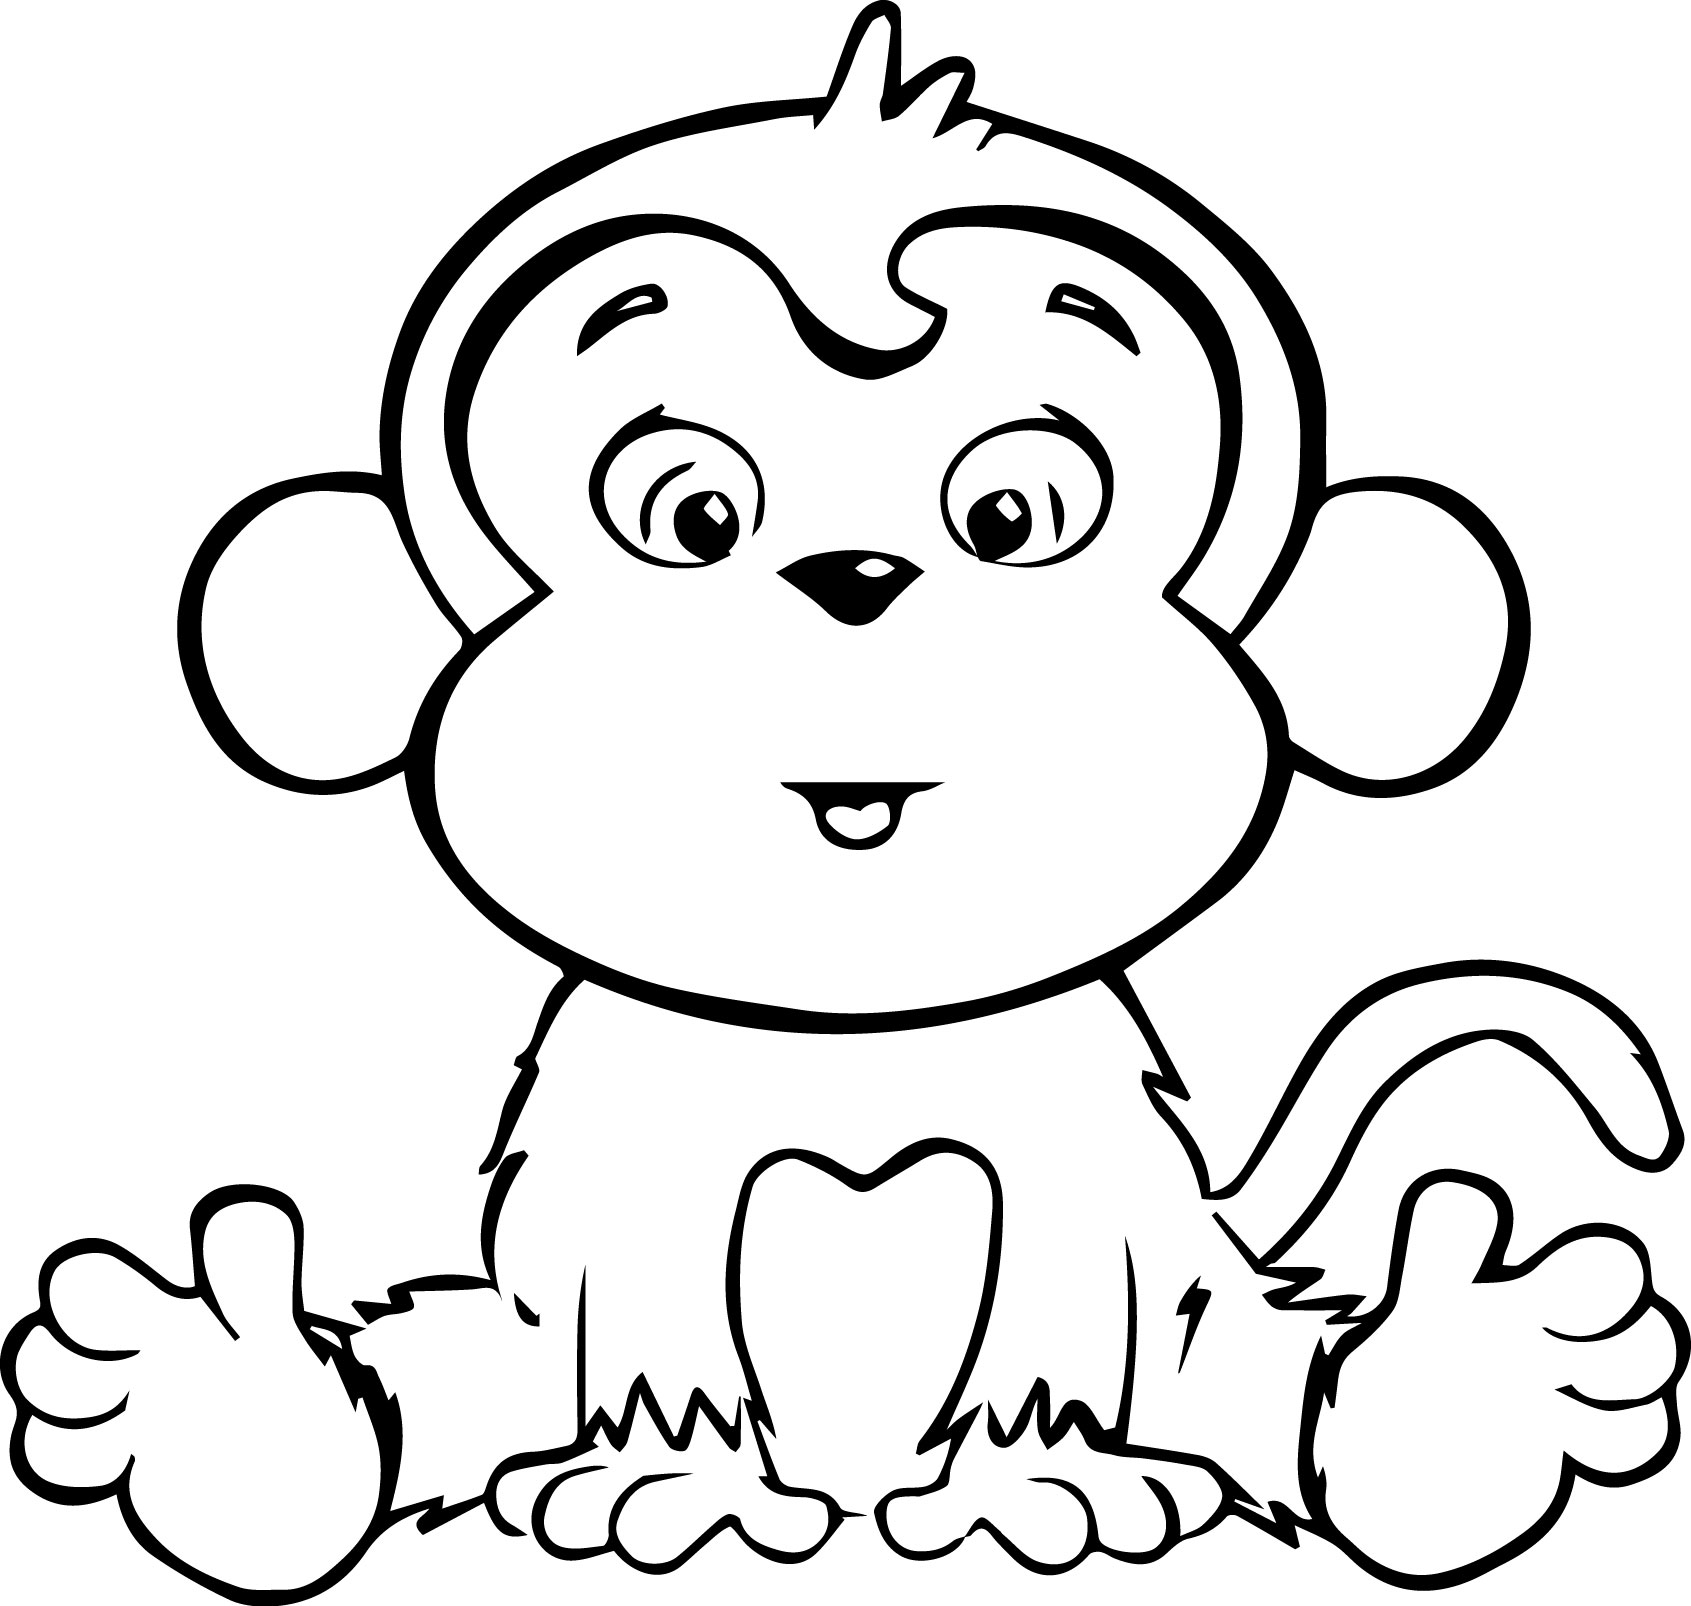 1691x1606 Affordable Cartoon Monkey Coloring Page With Pages